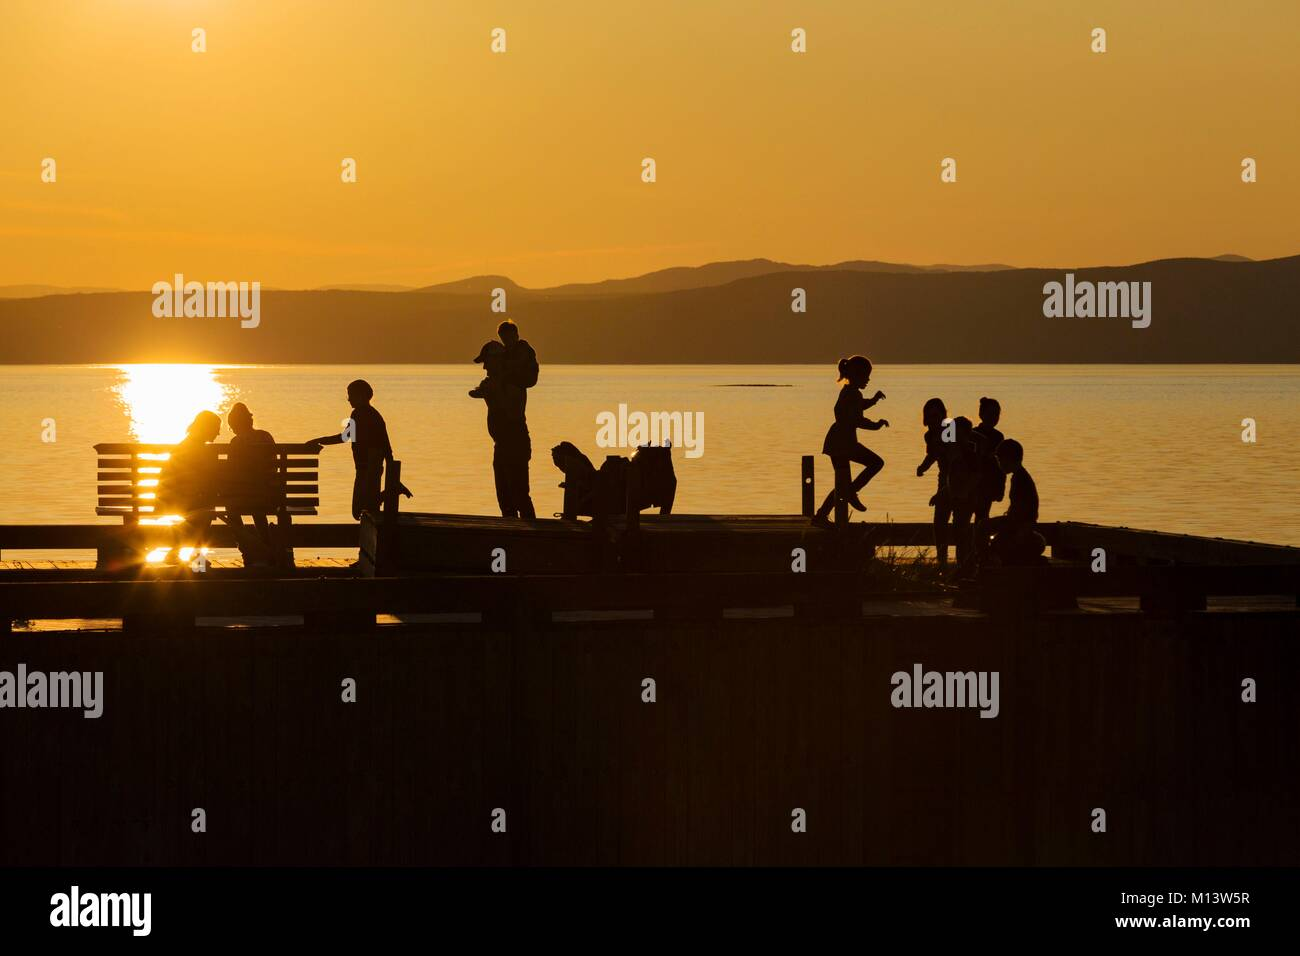 Canada, province of Quebec, Bas-Saint-Laurent region, Kamouraska, Miller quay at sunset, shadows - Stock Image